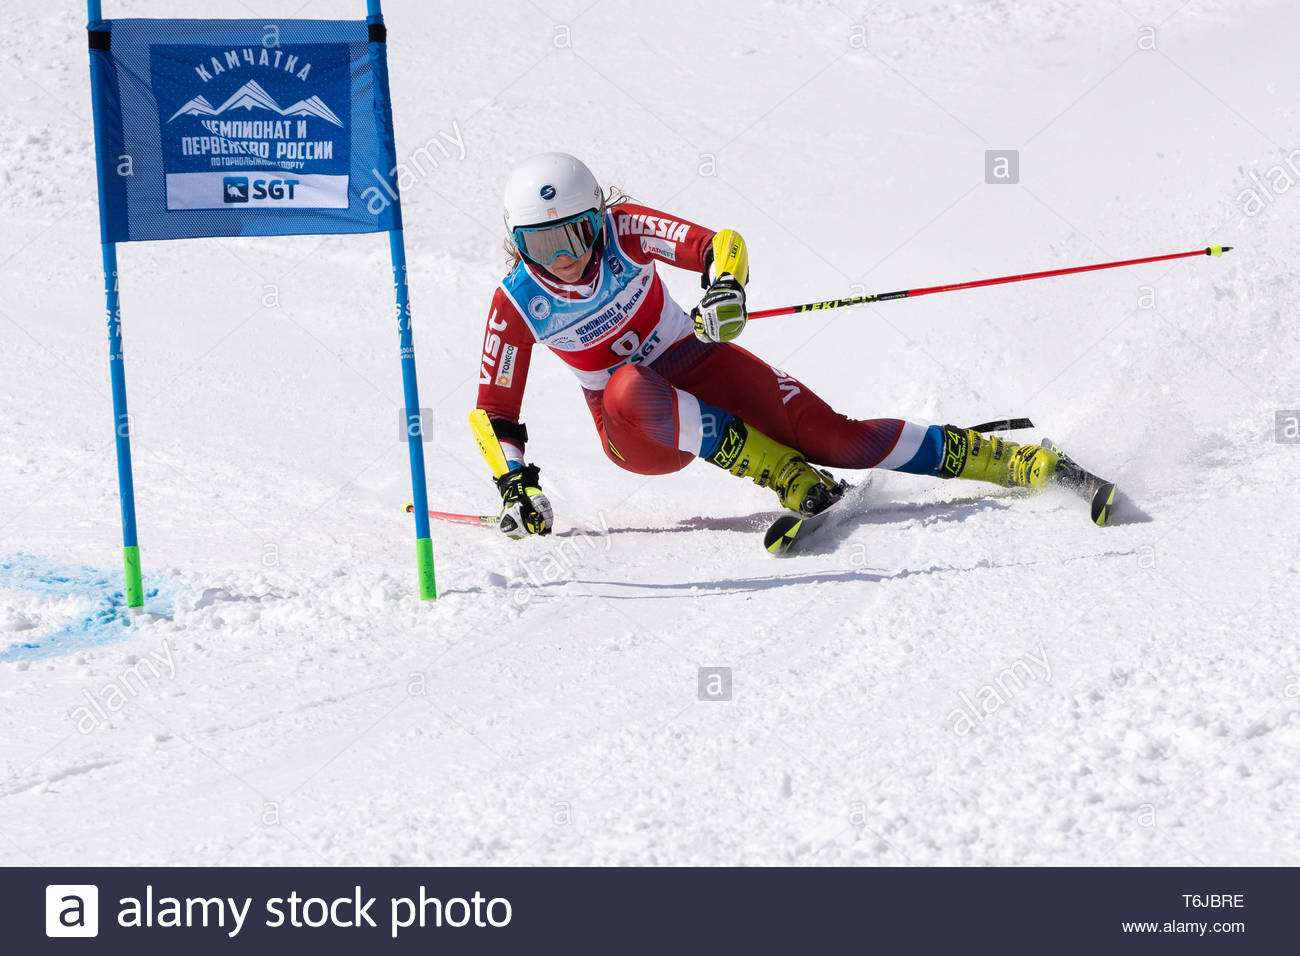 KAMCHATKA PENINSULA, RUSSIAN FEDERATION - APRIL 1, 2019: Mountain skier Krokhina Sofya (Moscow) skiing down snowy mountain slope. Russian Women's Alpi - Stock Image